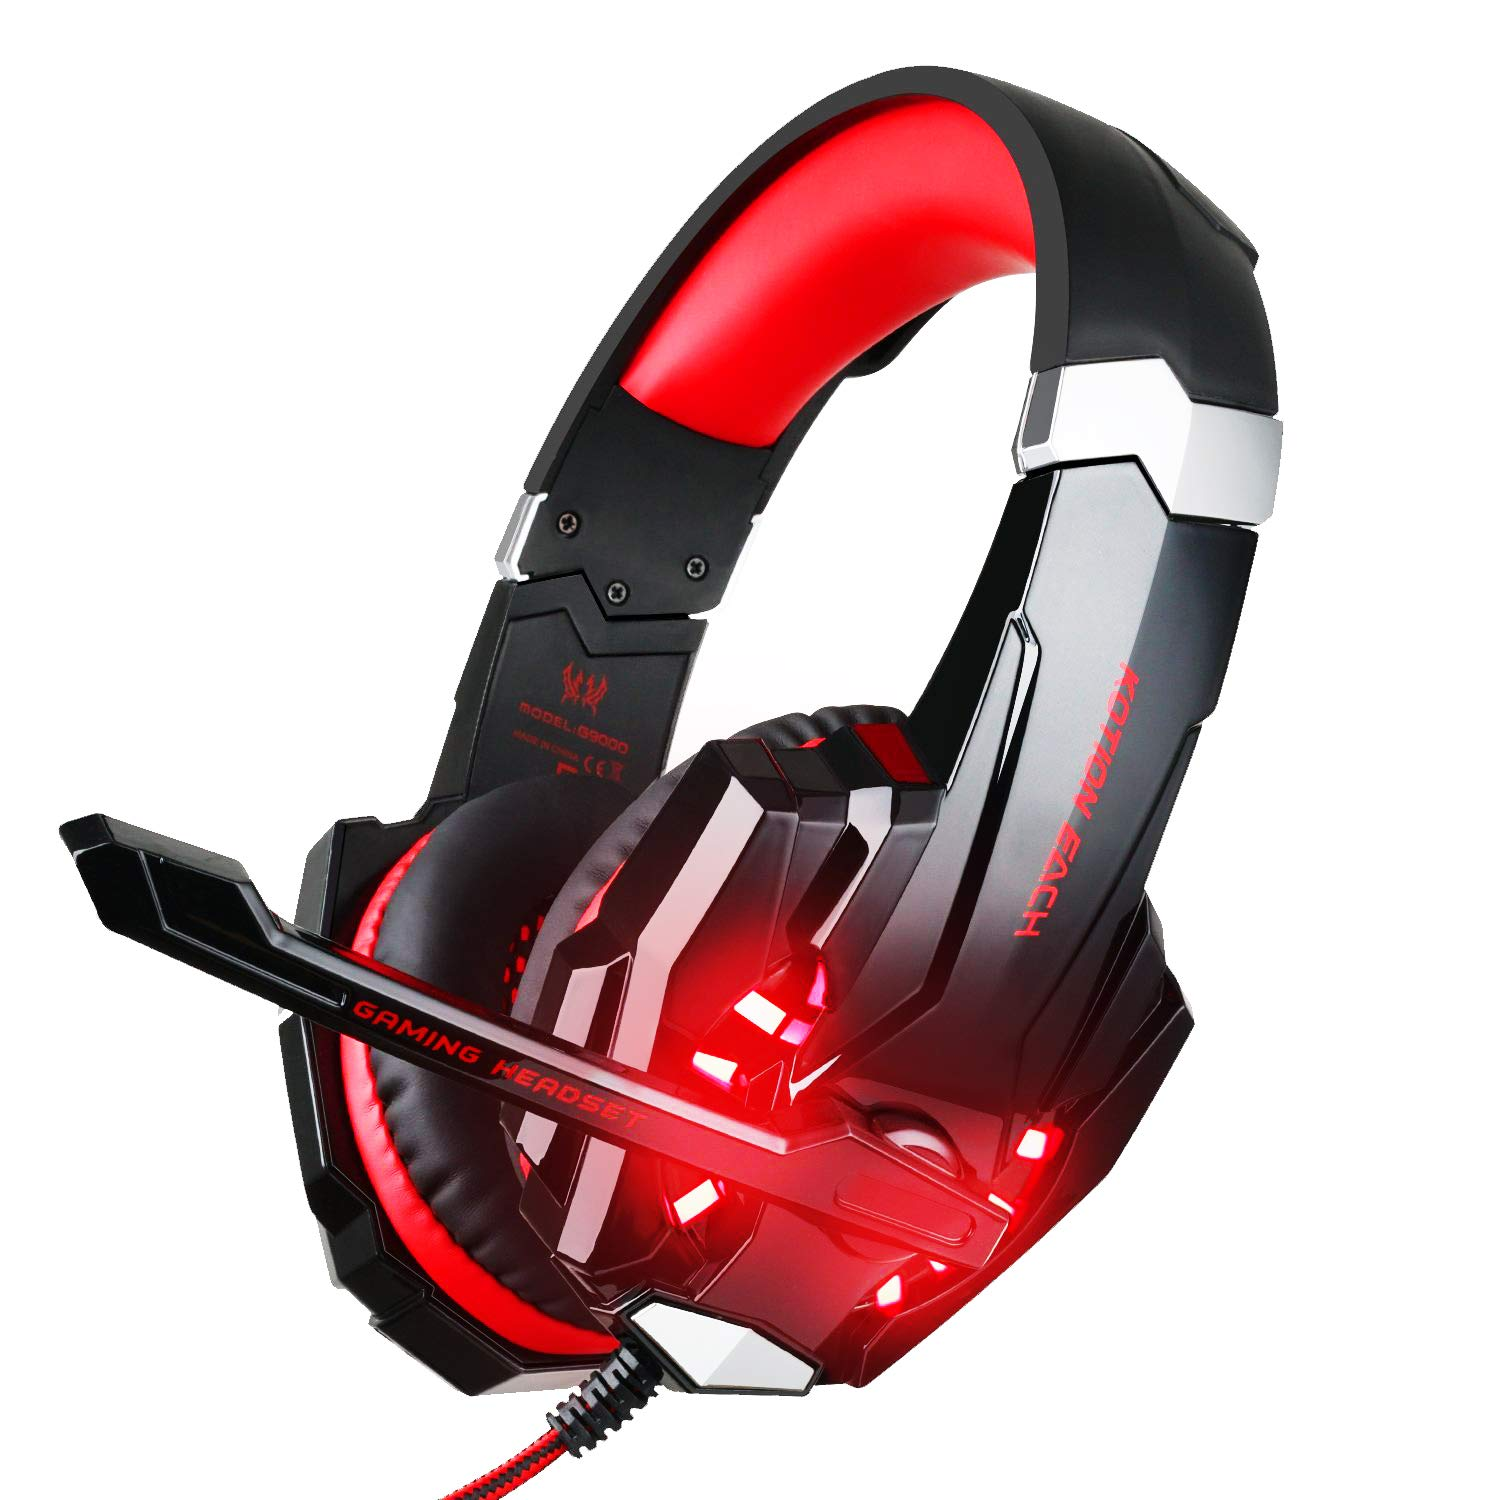 Bluefire Stereo Gaming Headset (Kotion Each) - What are the